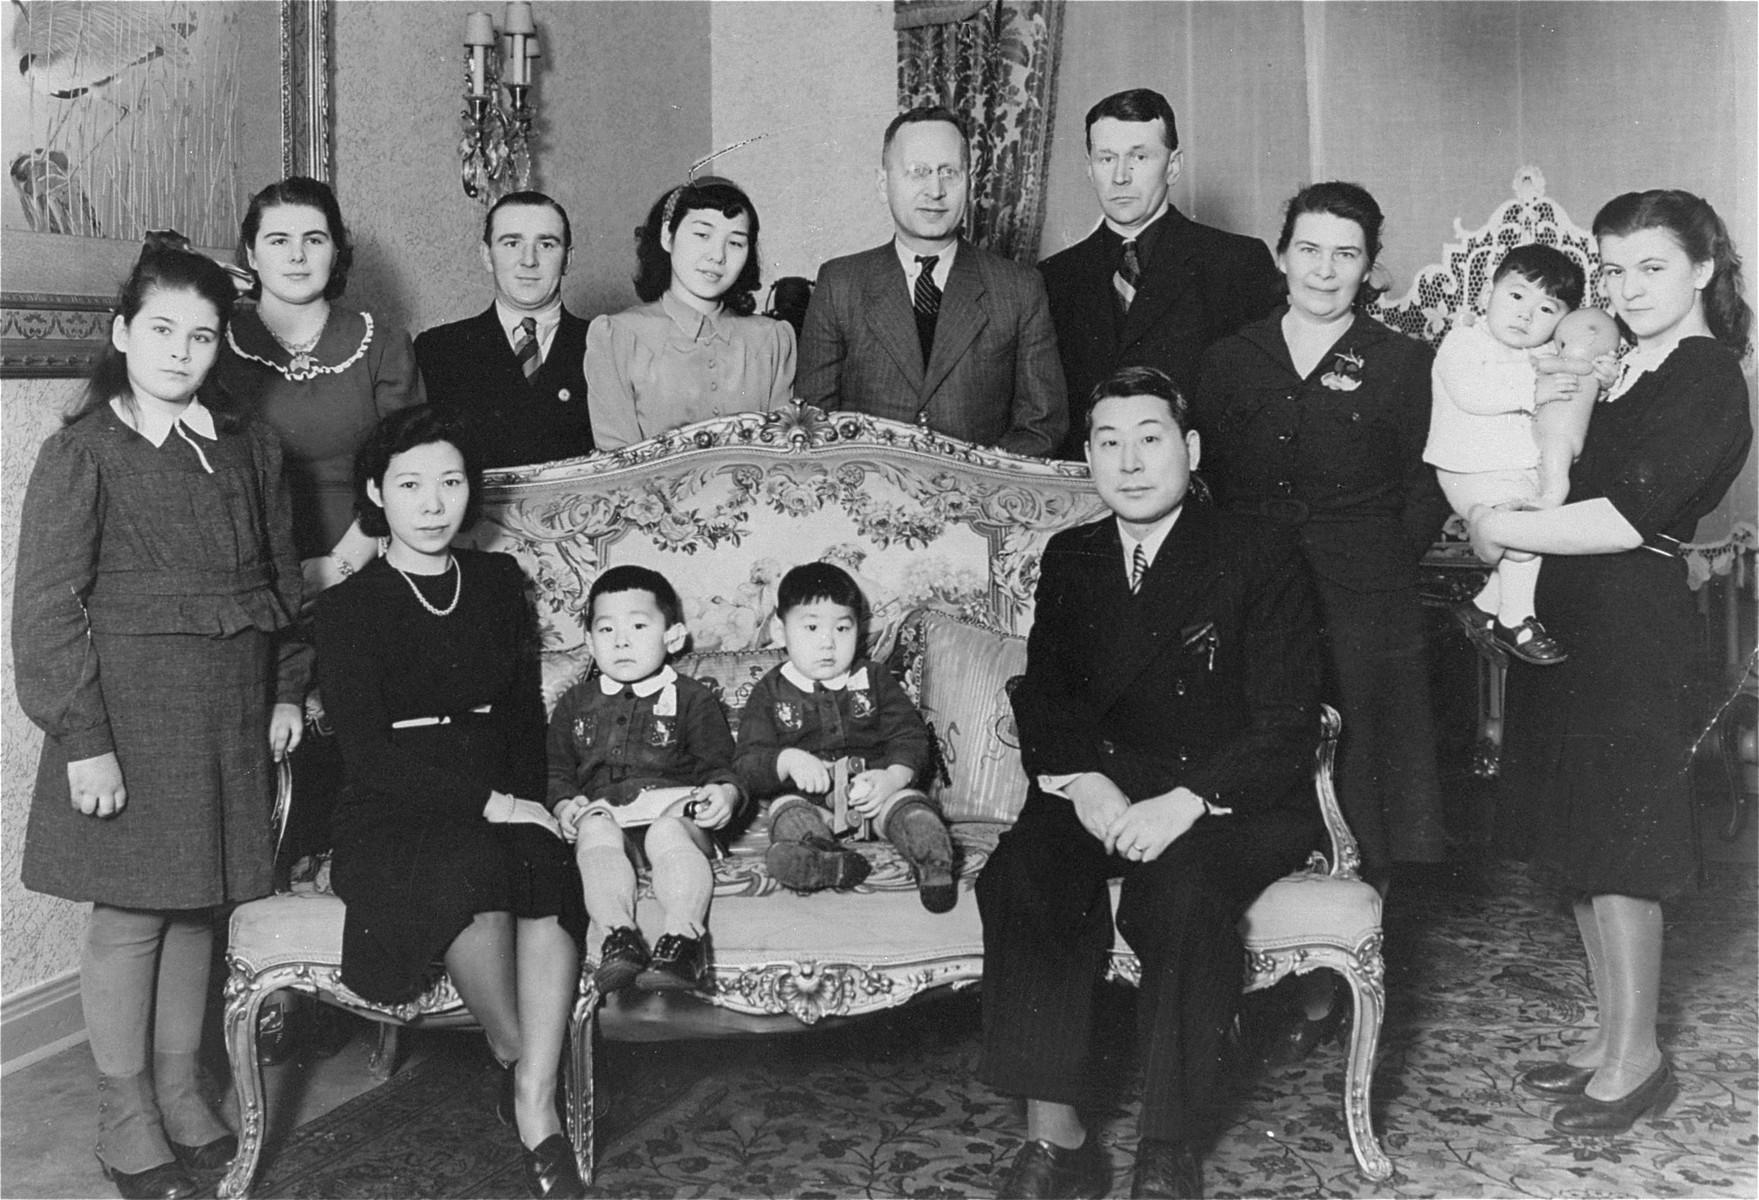 Chiune Sugihara poses with family and friends at his residence in Koenigsberg.